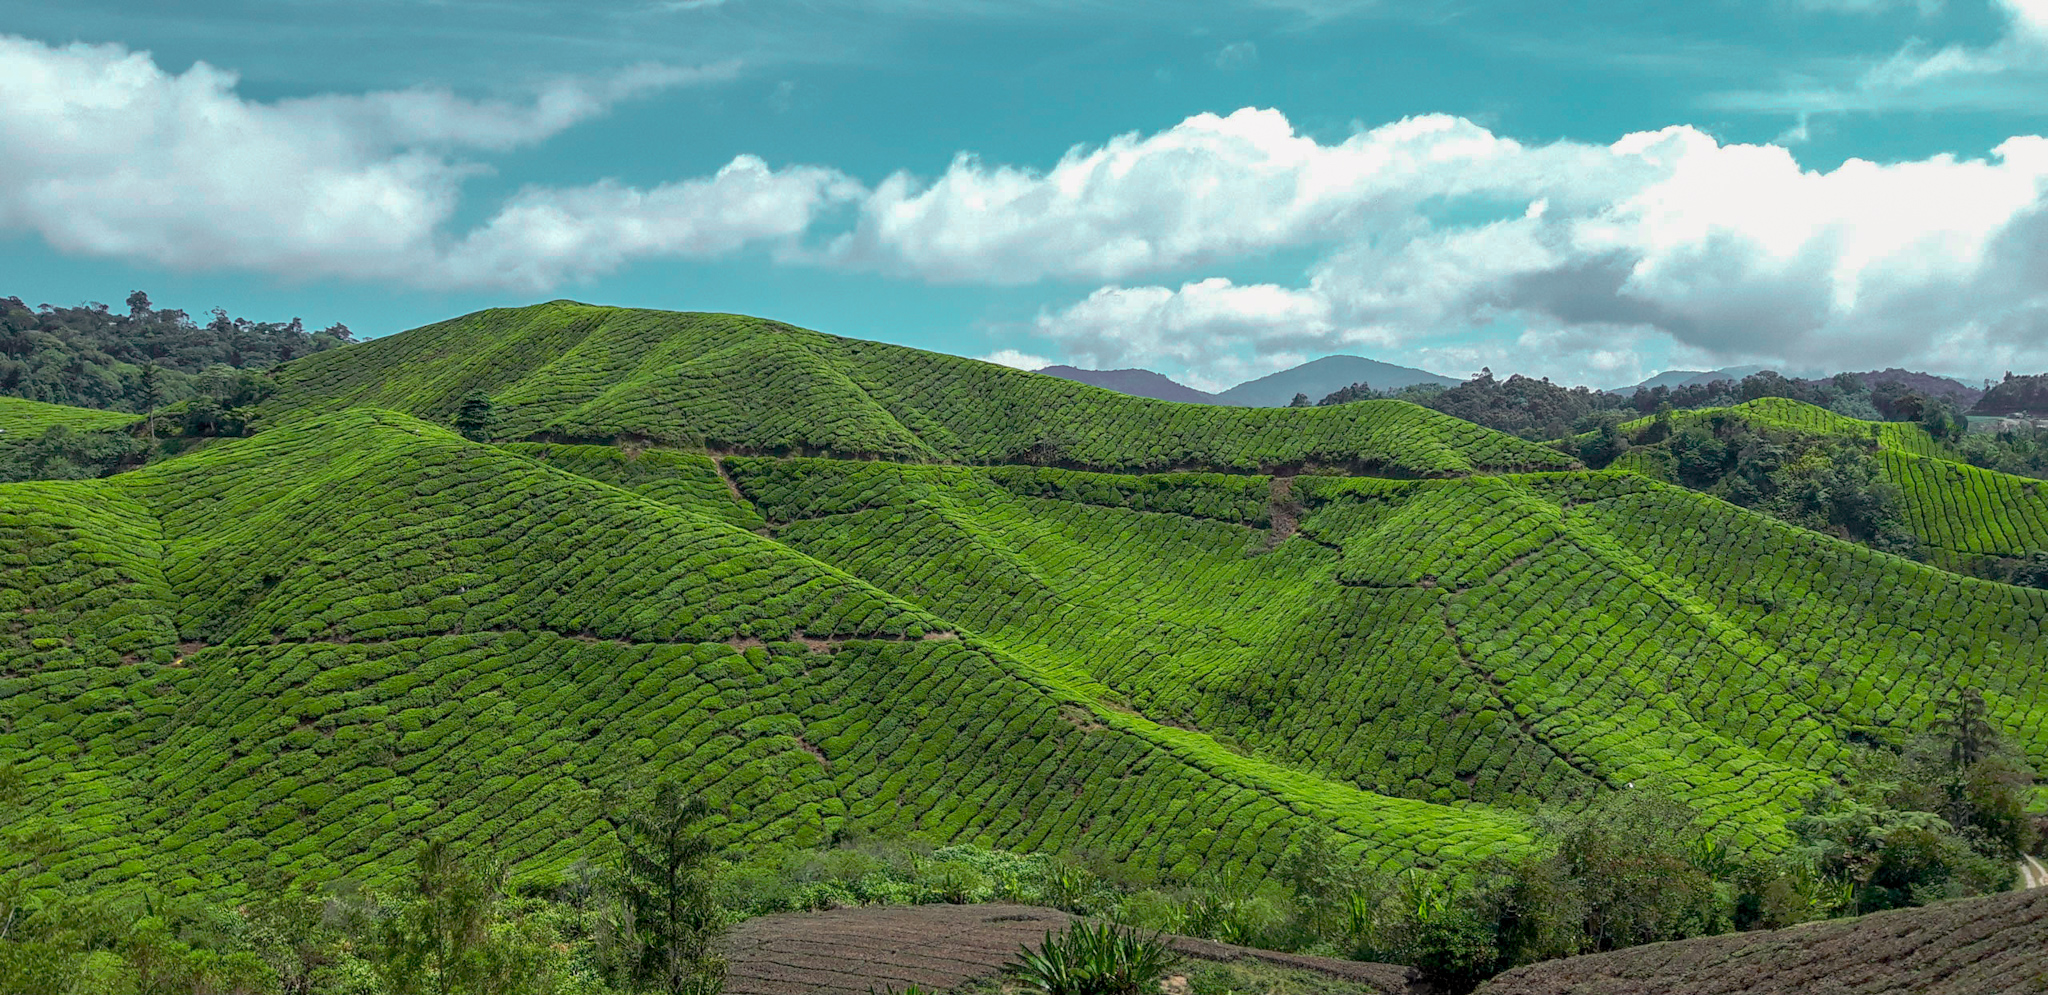 Exciting things to do in Cameron Highlands